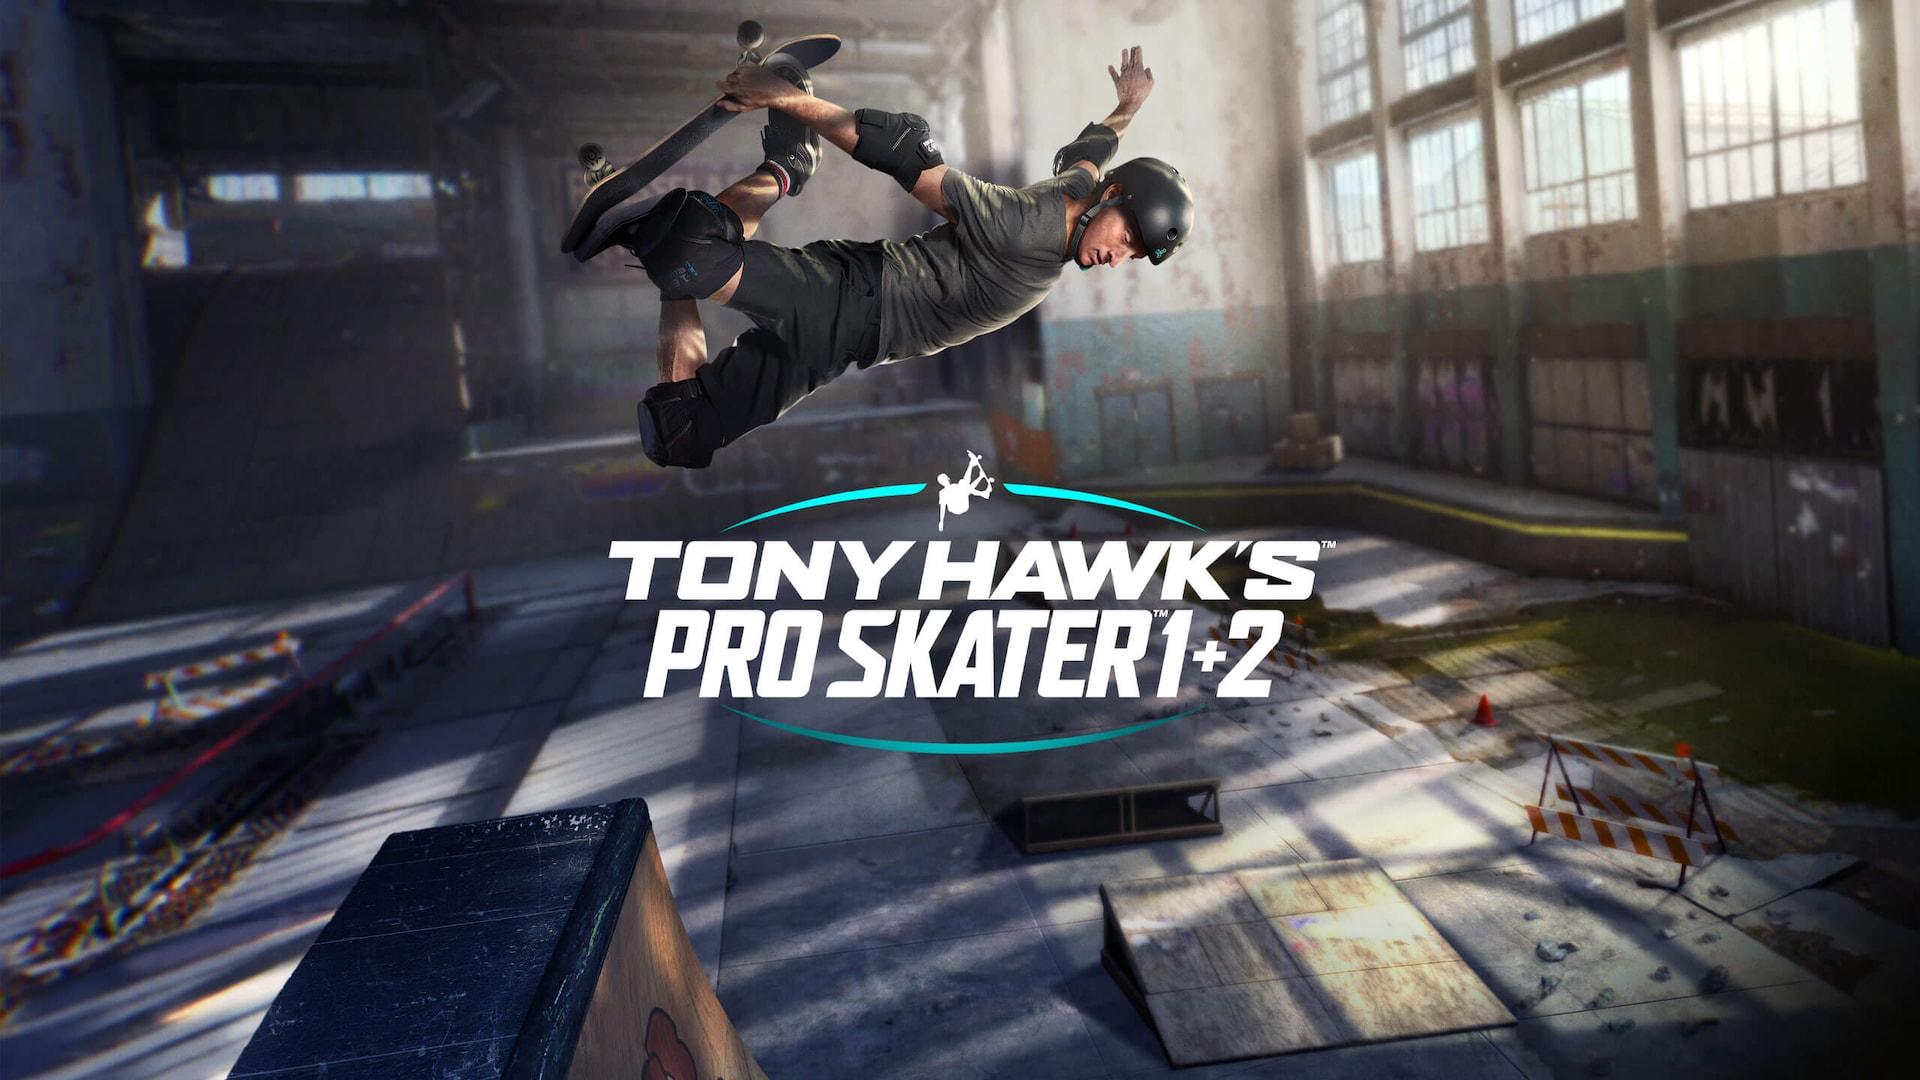 Last Game You Finished And Your Four-ghts - Page 22 Diesel%2Fproductv2%2Ftony-hawks-pro-skater-1-and-2%2Fhome%2FEGS_TonyHawksProSkater12_VicariousVisions_Editions_S1-2560x1440-d381543a642f3bd9394fa67b46ede2275d9b93e6